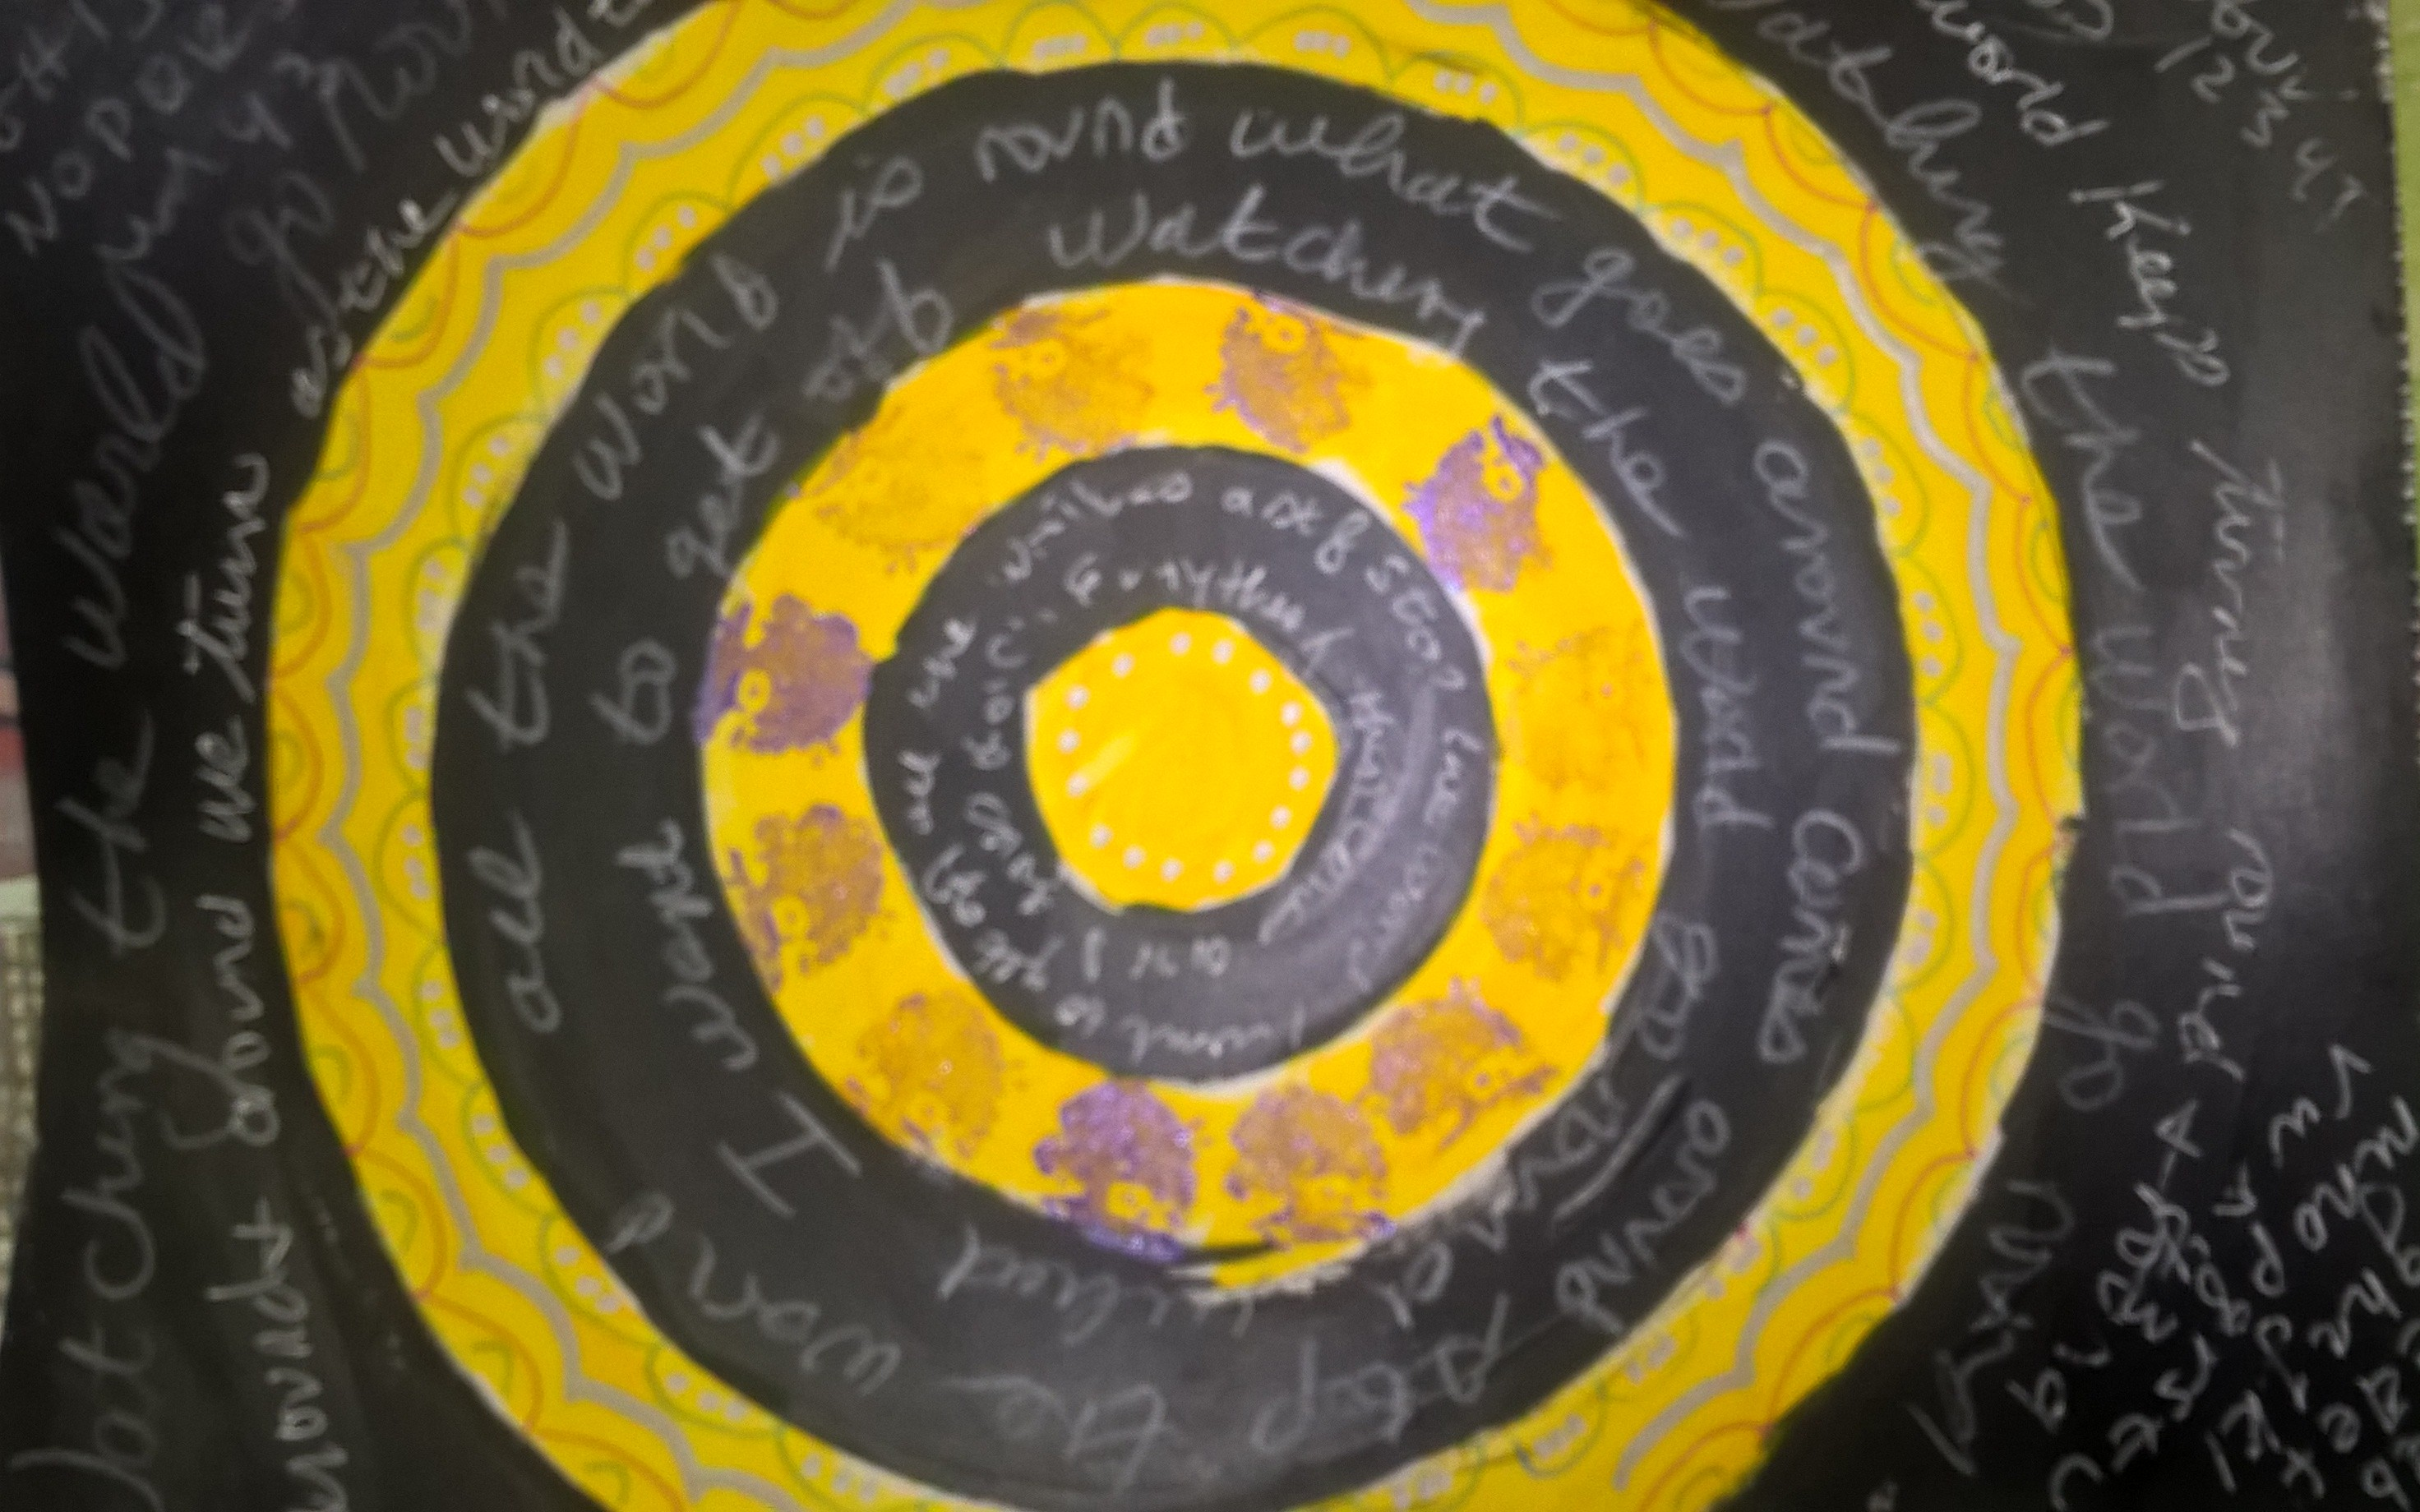 abstract art with circles and journaling